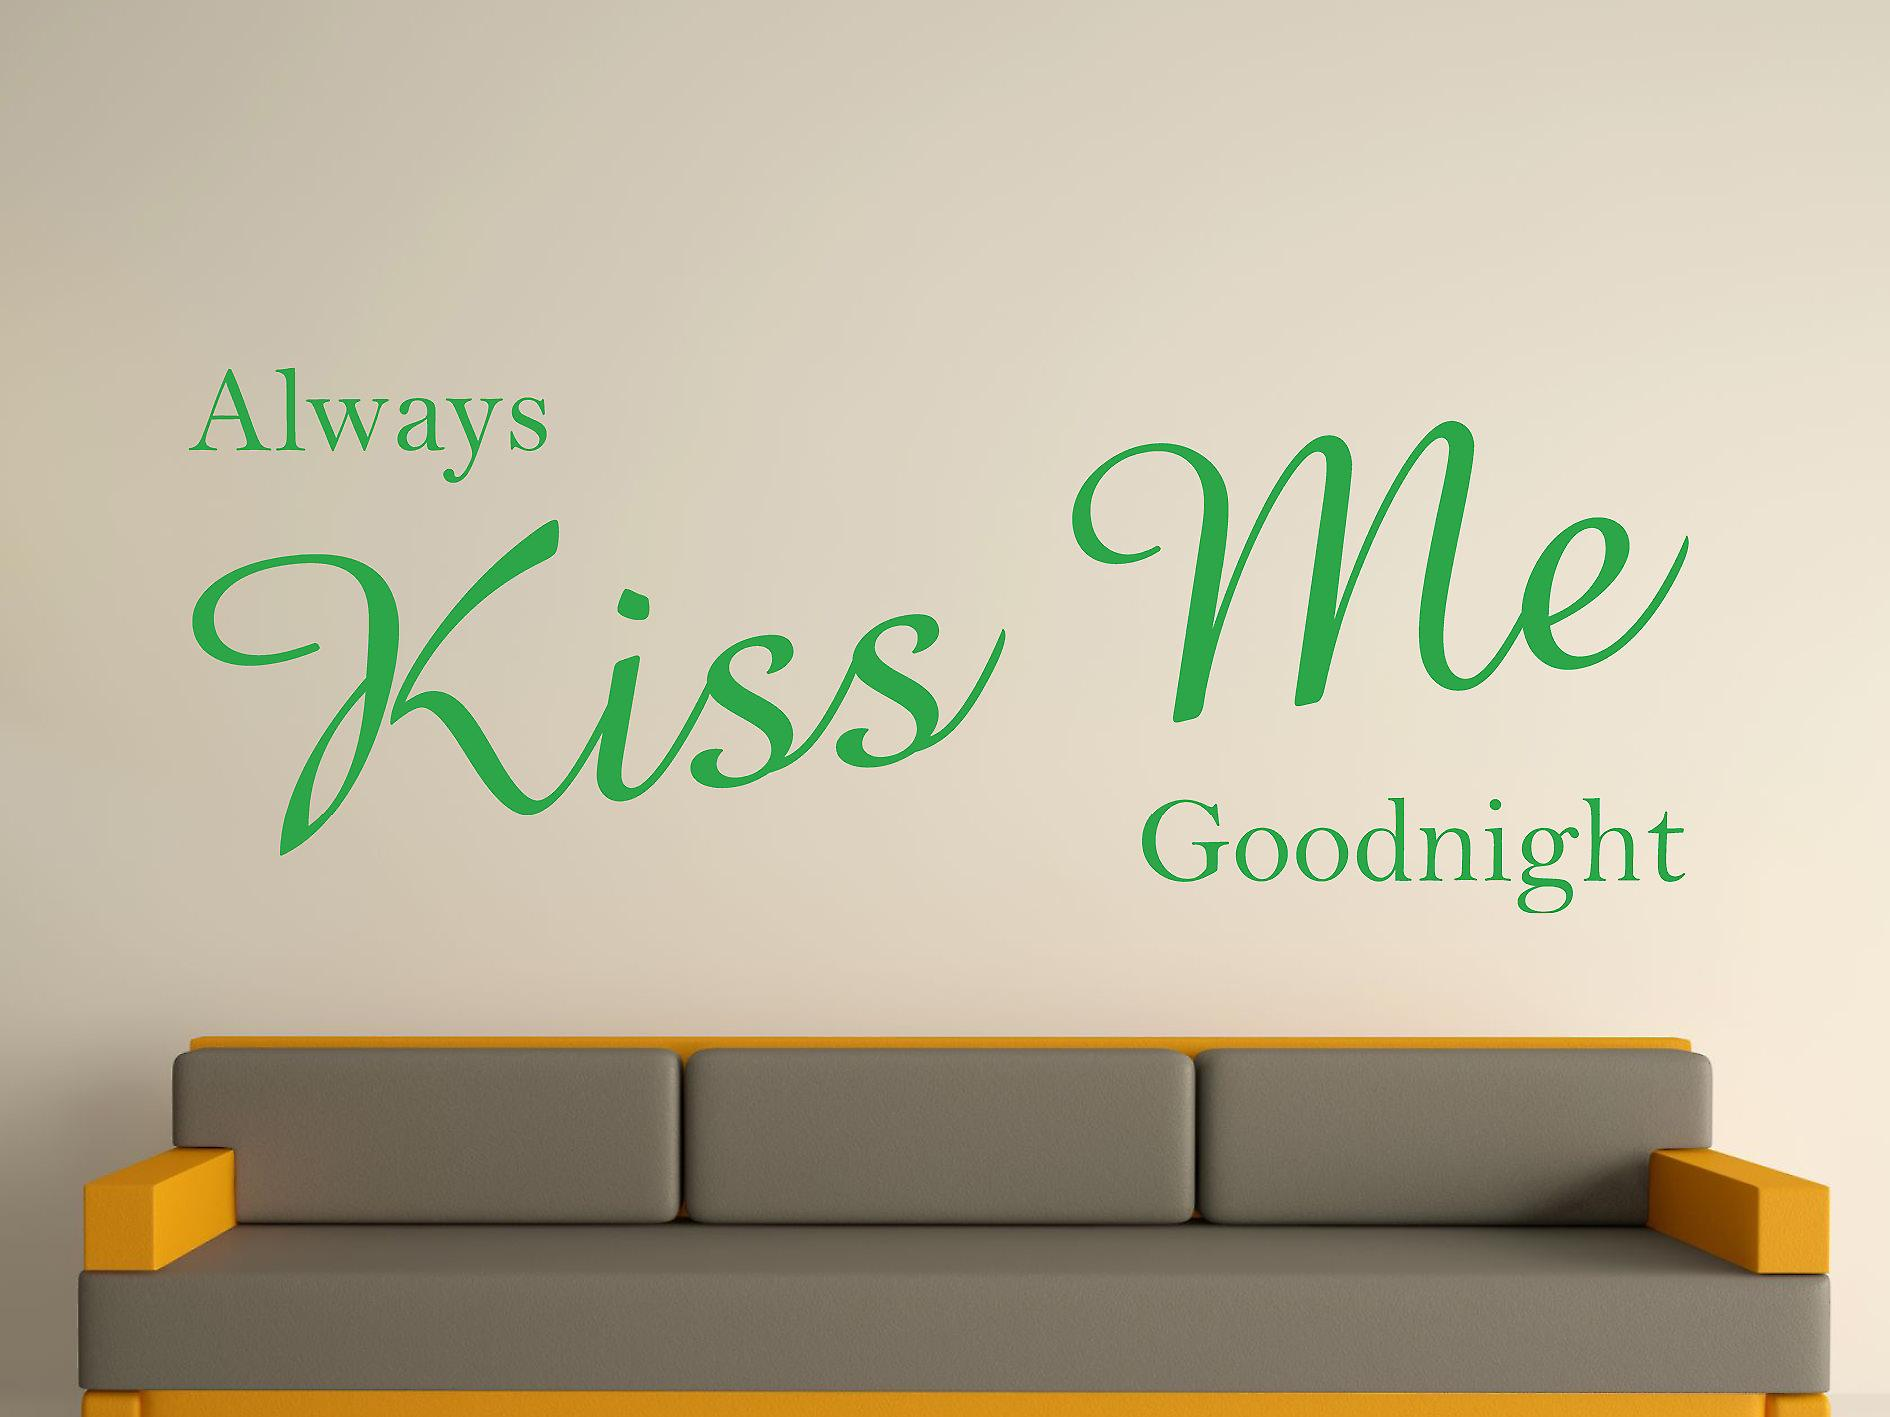 Always Kiss Me Goodnight Wall Art Sticker -  Green